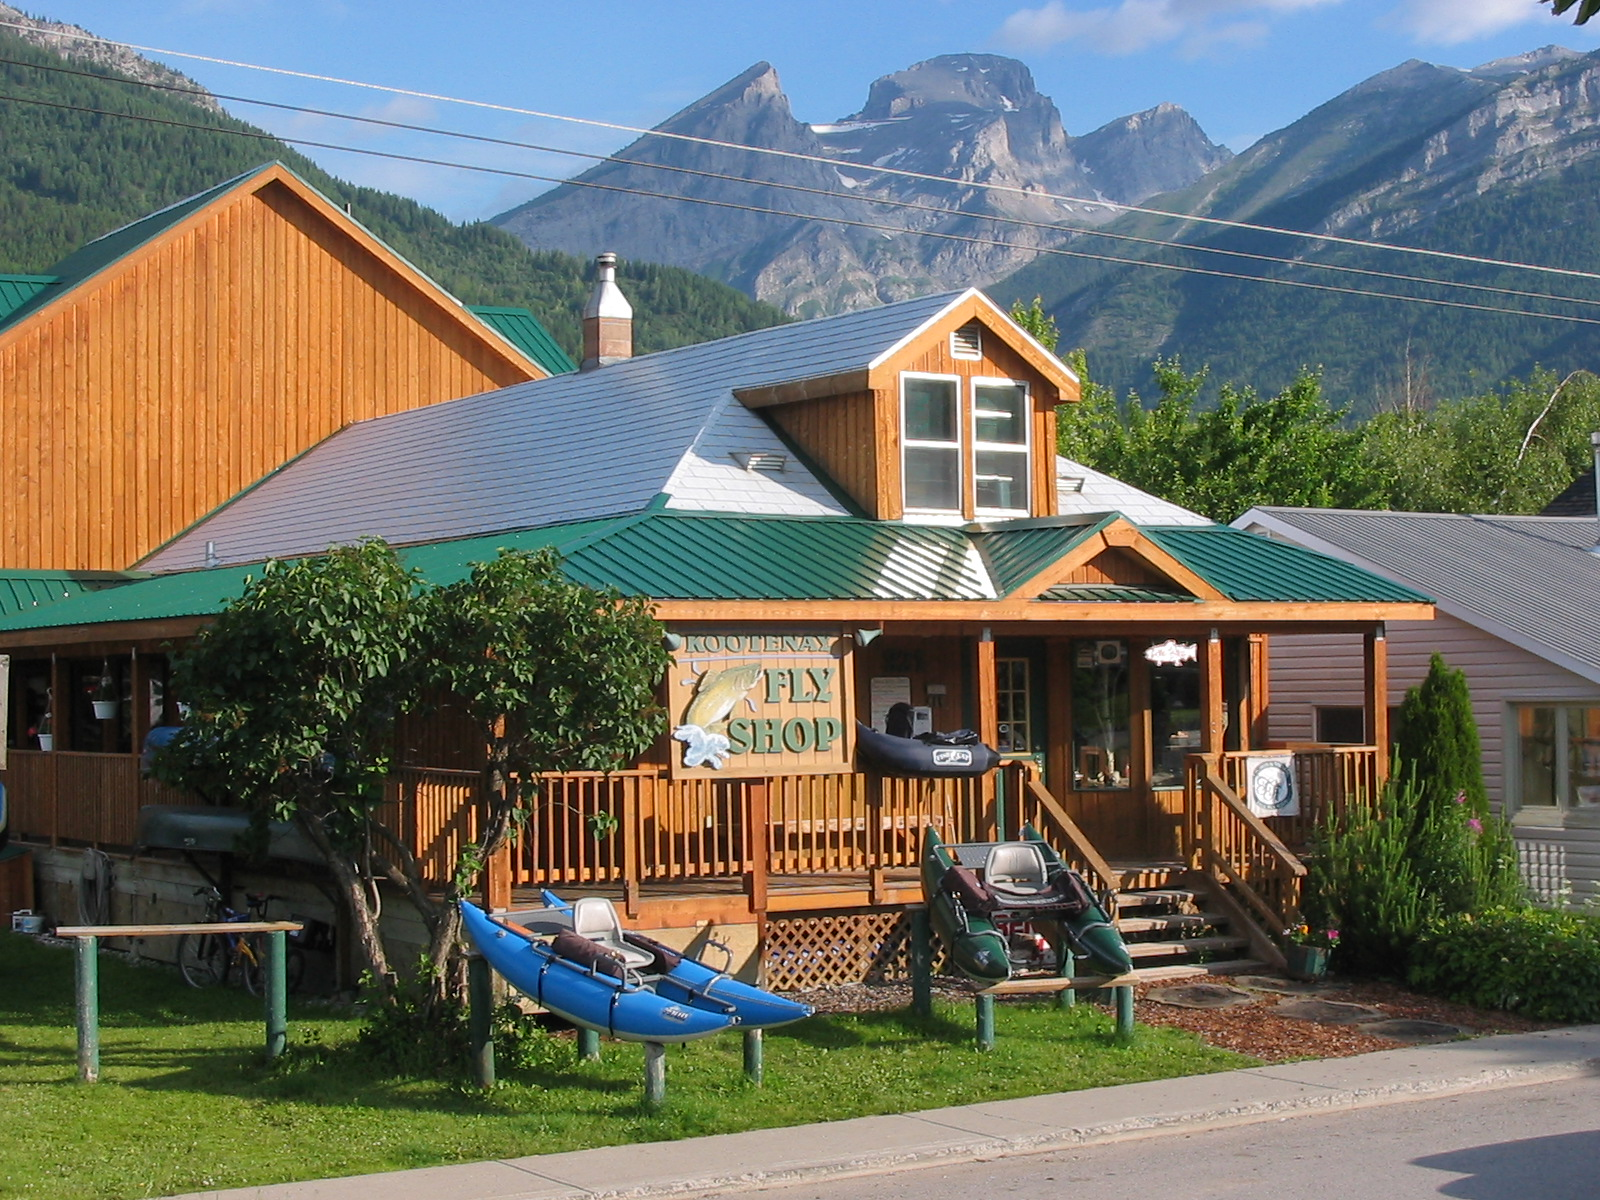 Kootenay Fly Shop